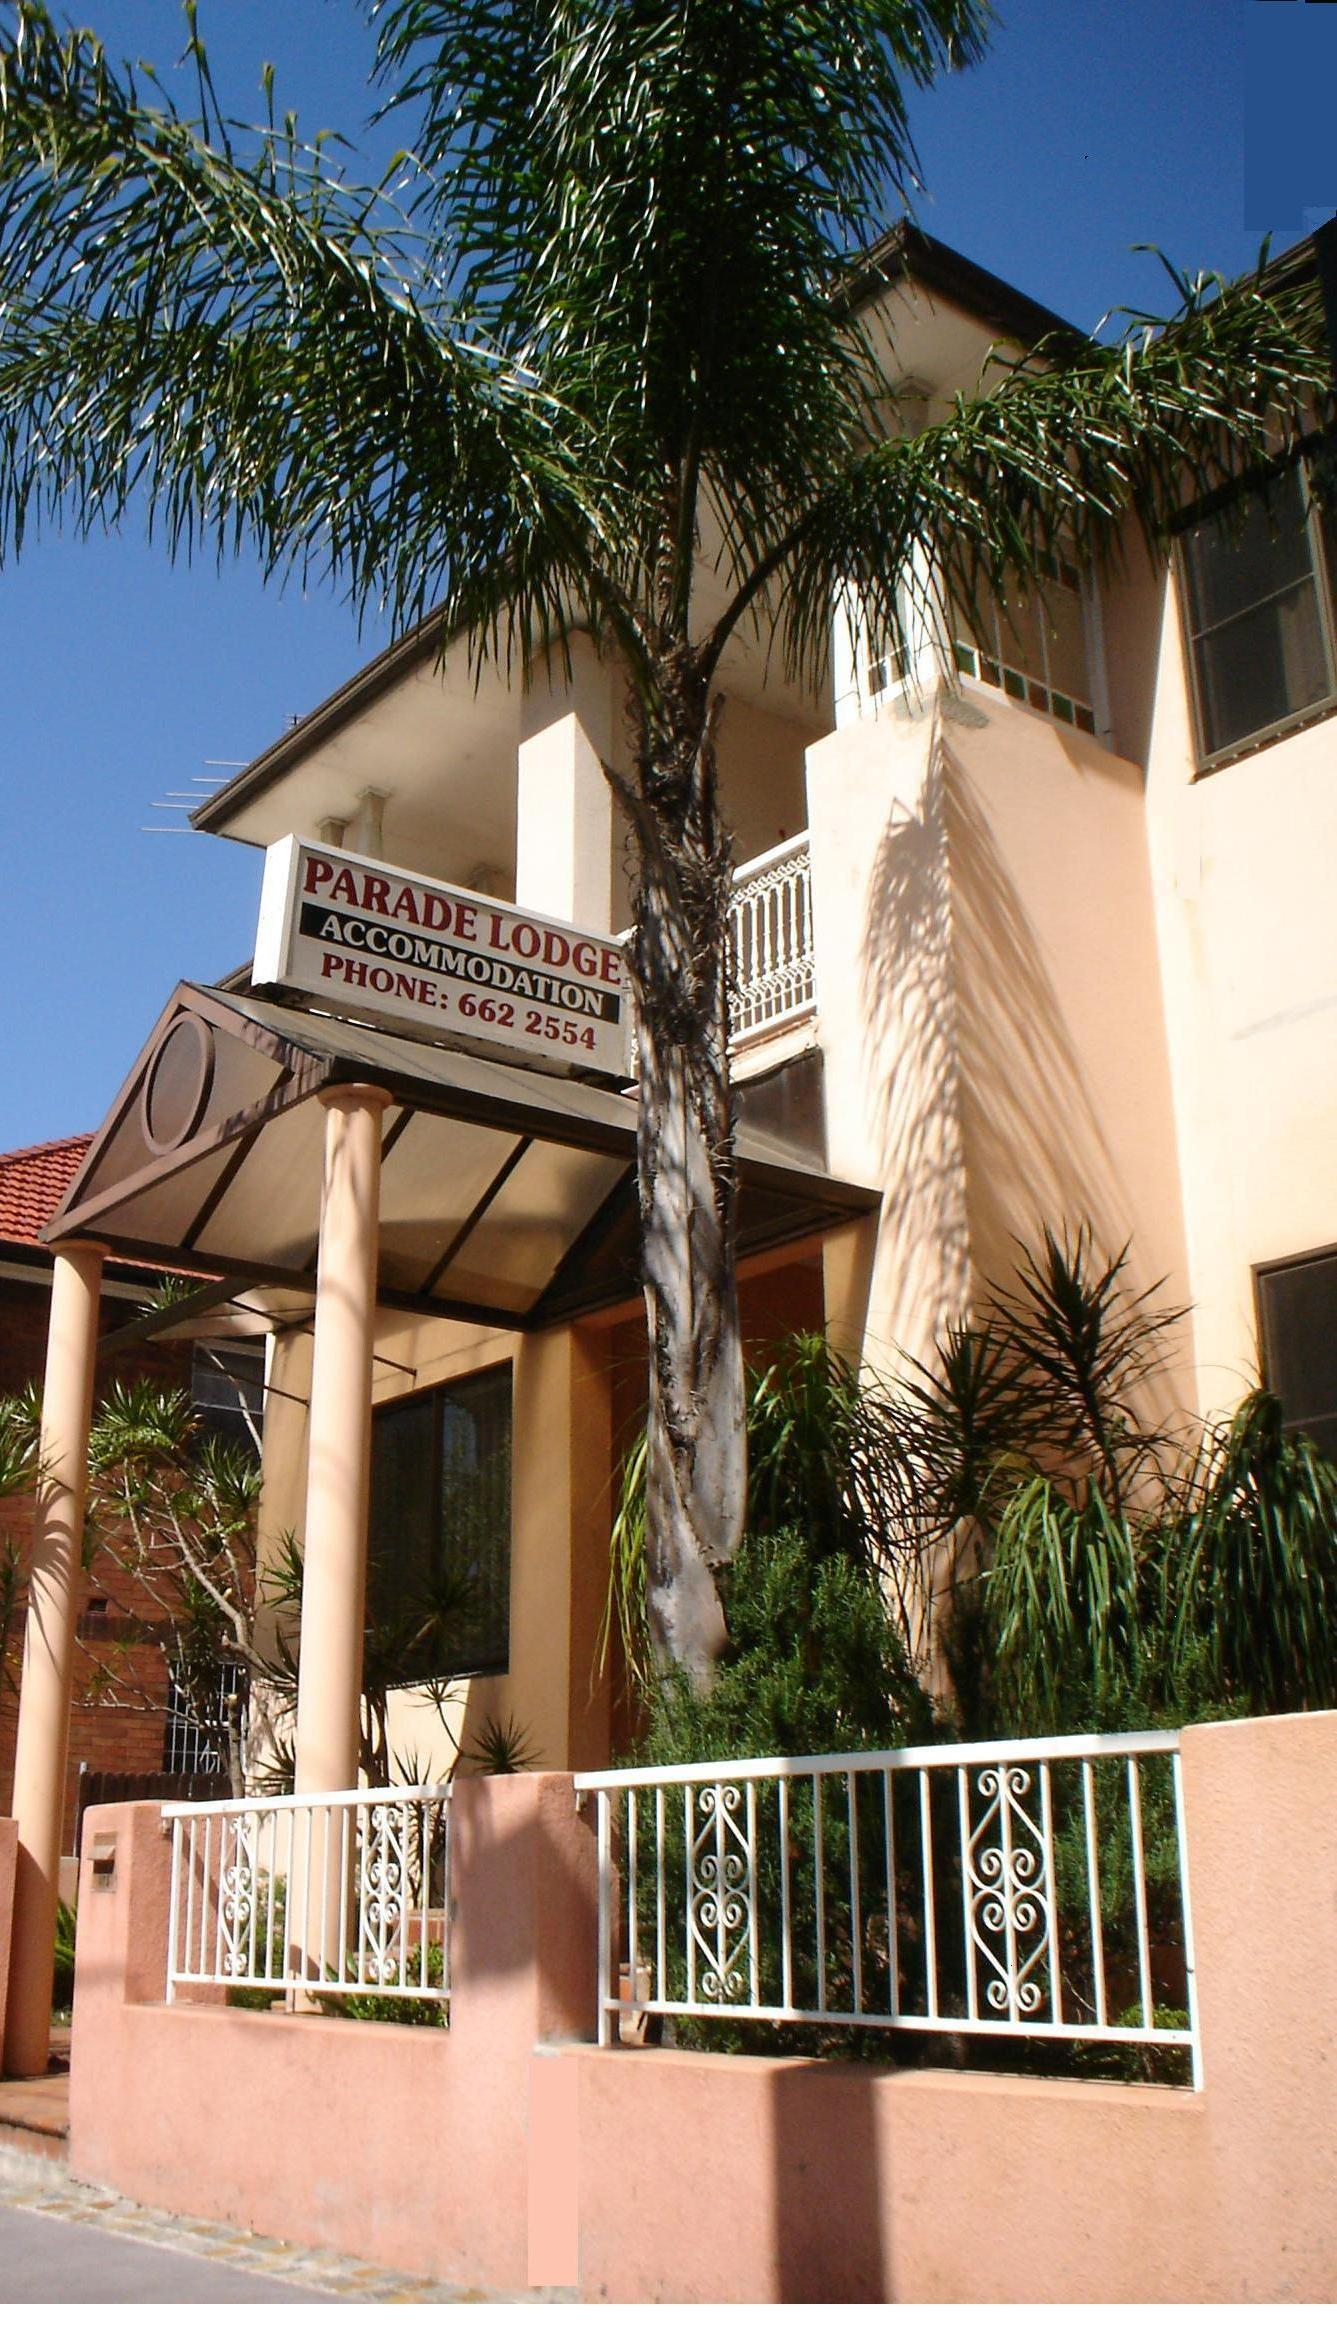 Parade Lodge - Accommodation in Surfers Paradise